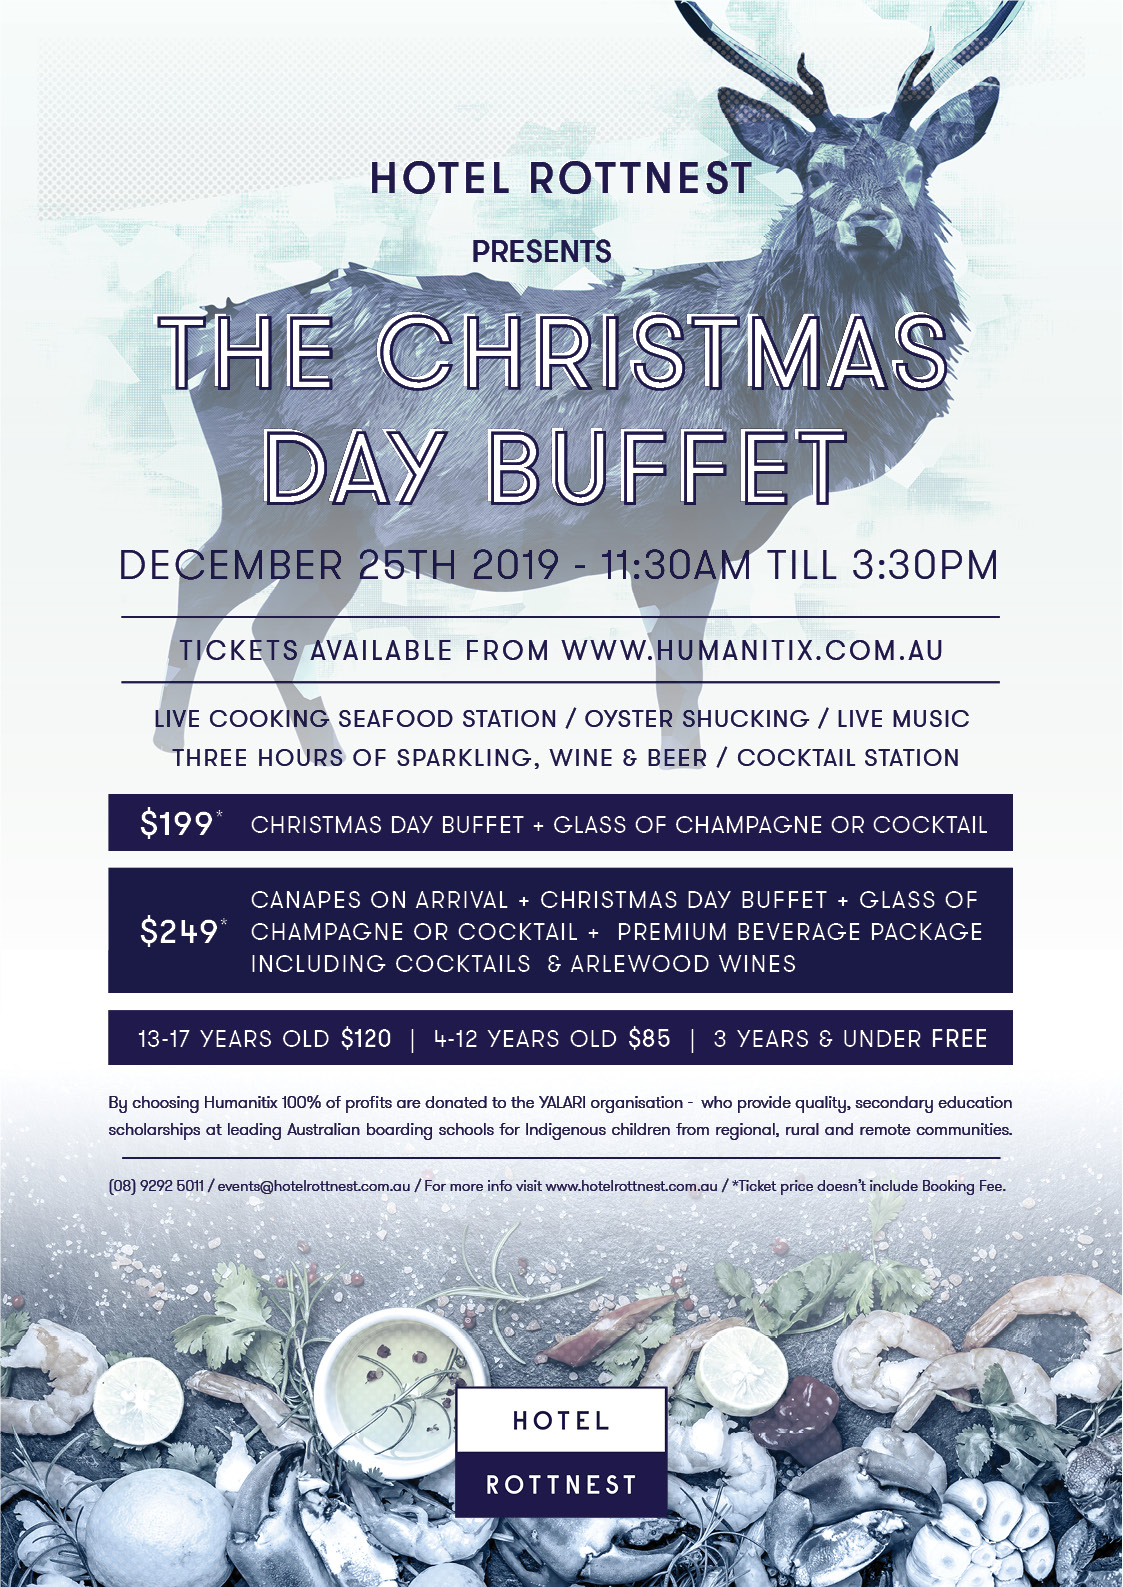 Christmas Day 2019.Hotel Rottnest Presents The Christmas Day Buffet 2019